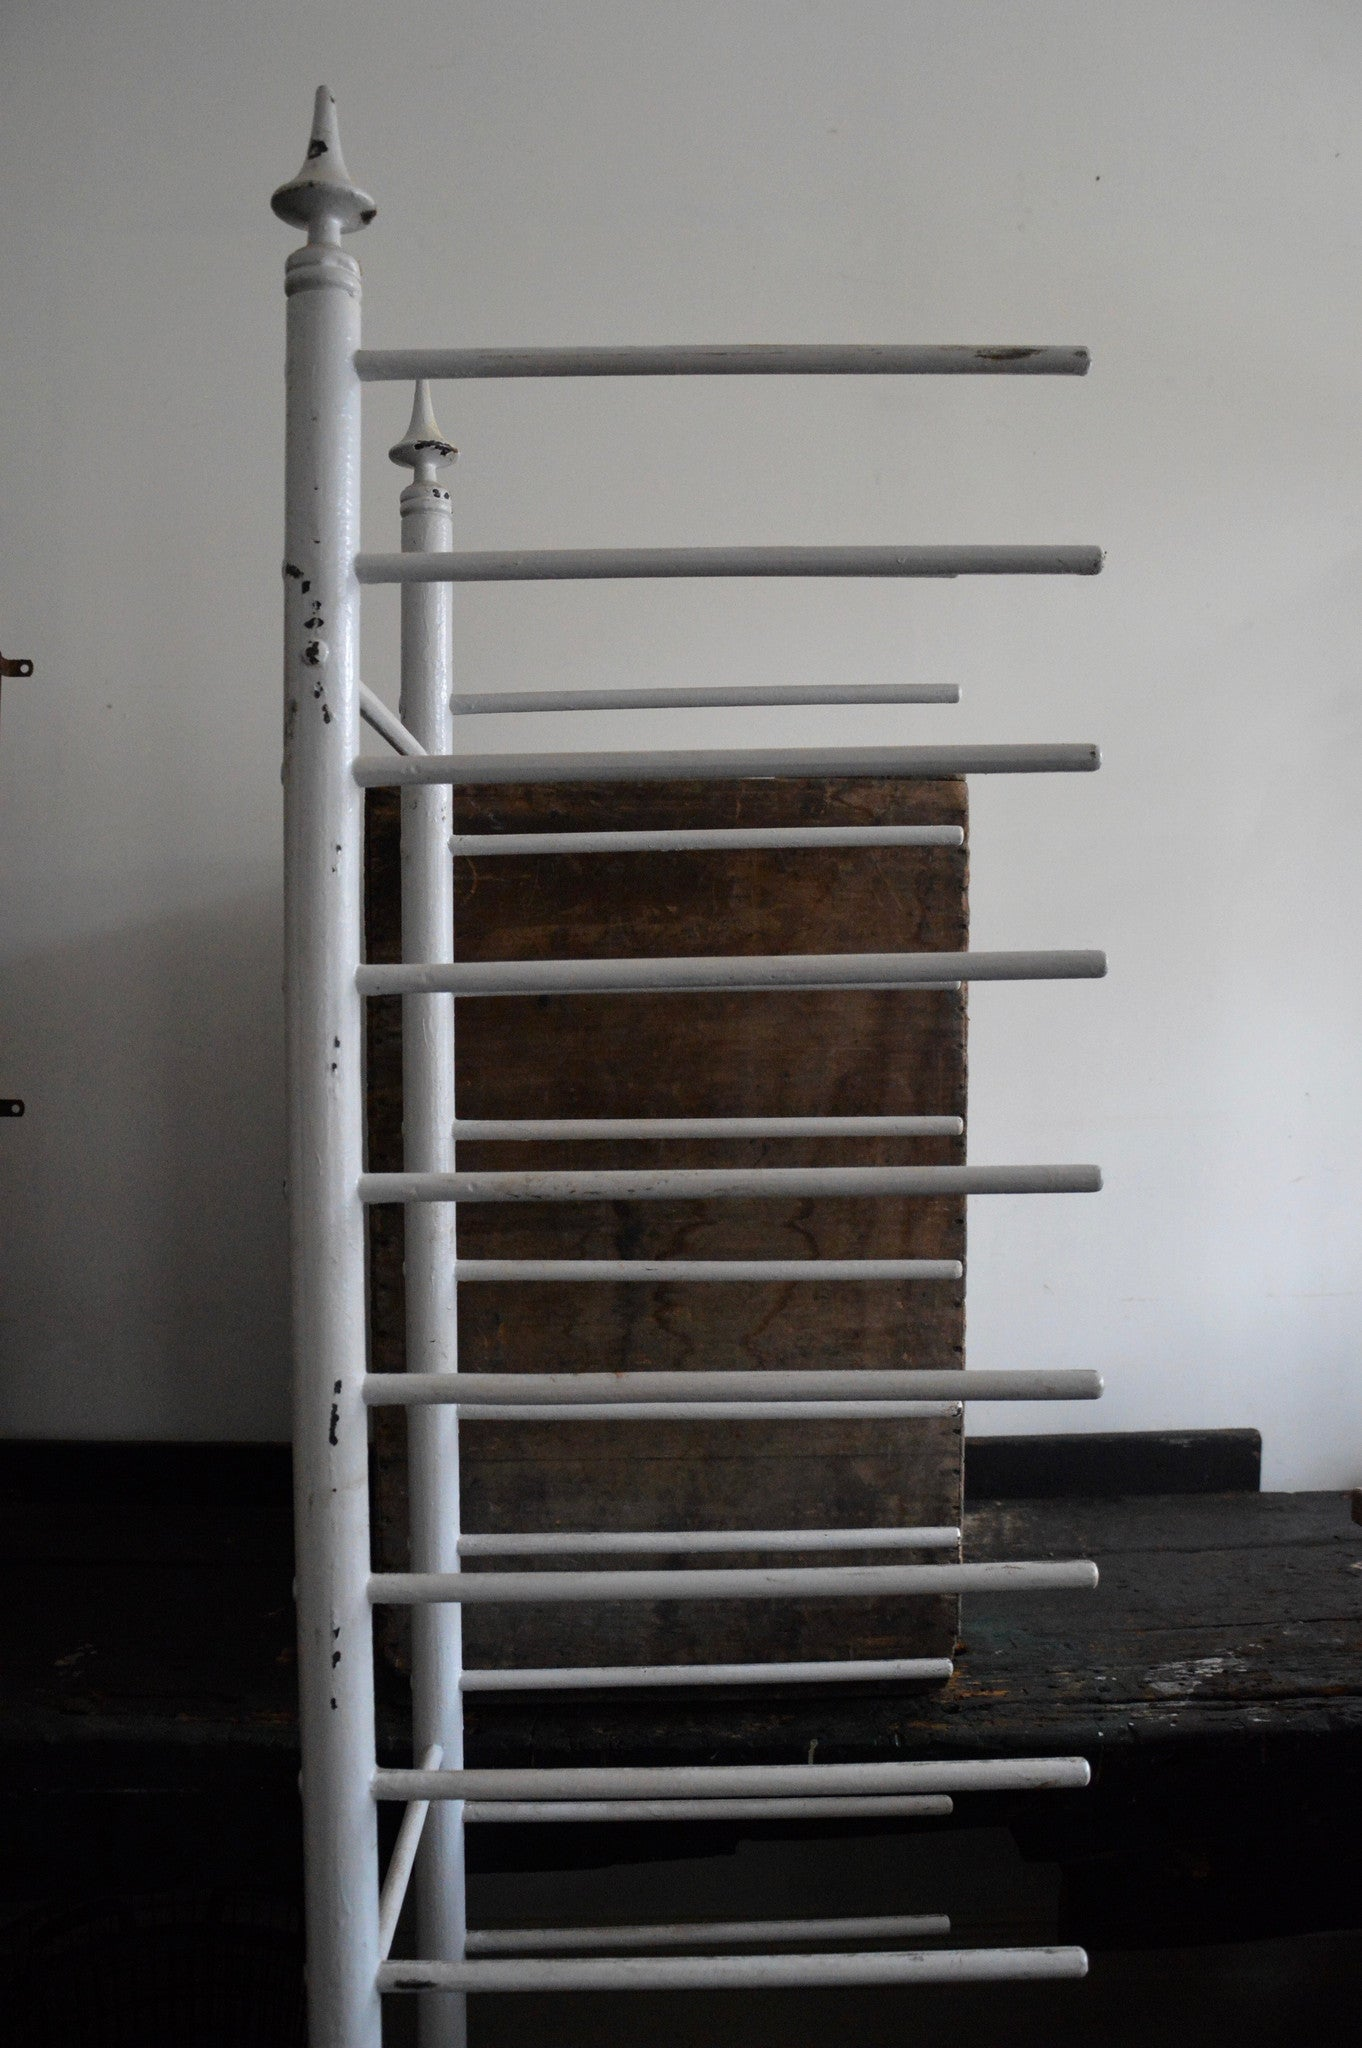 divine antique BAKERY RACK on wheels